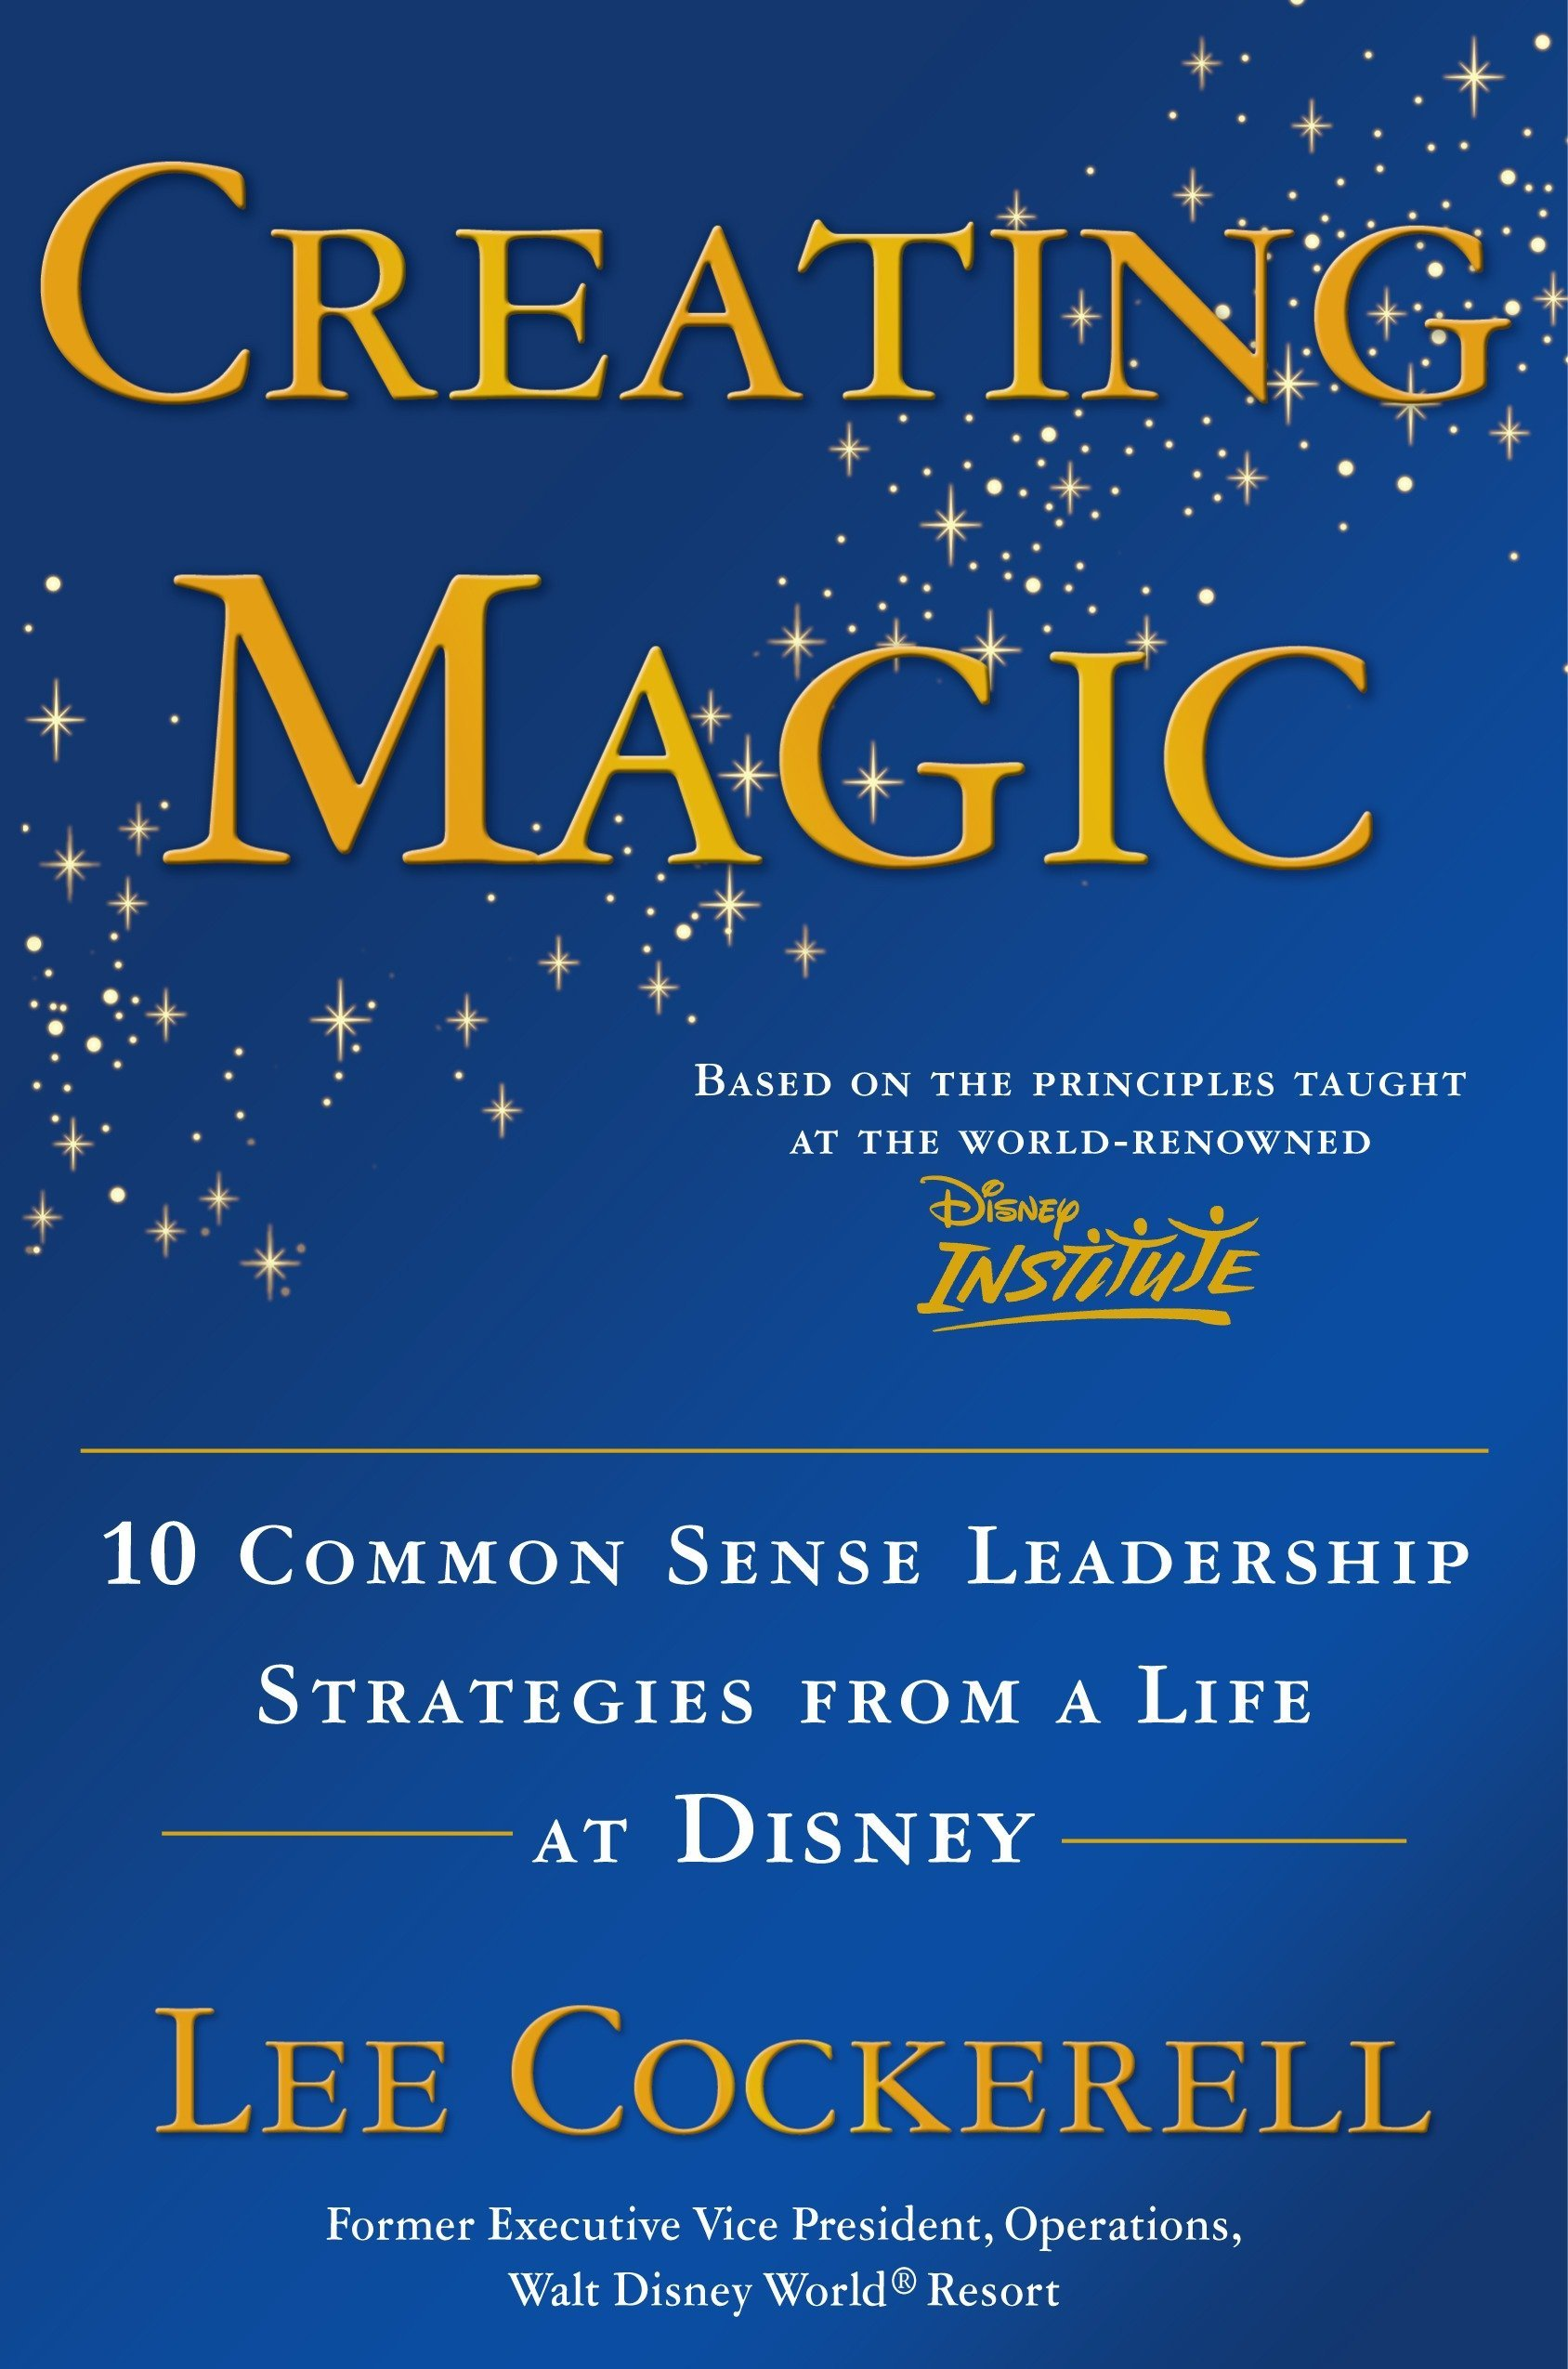 How to develop a successful business with the help of magic